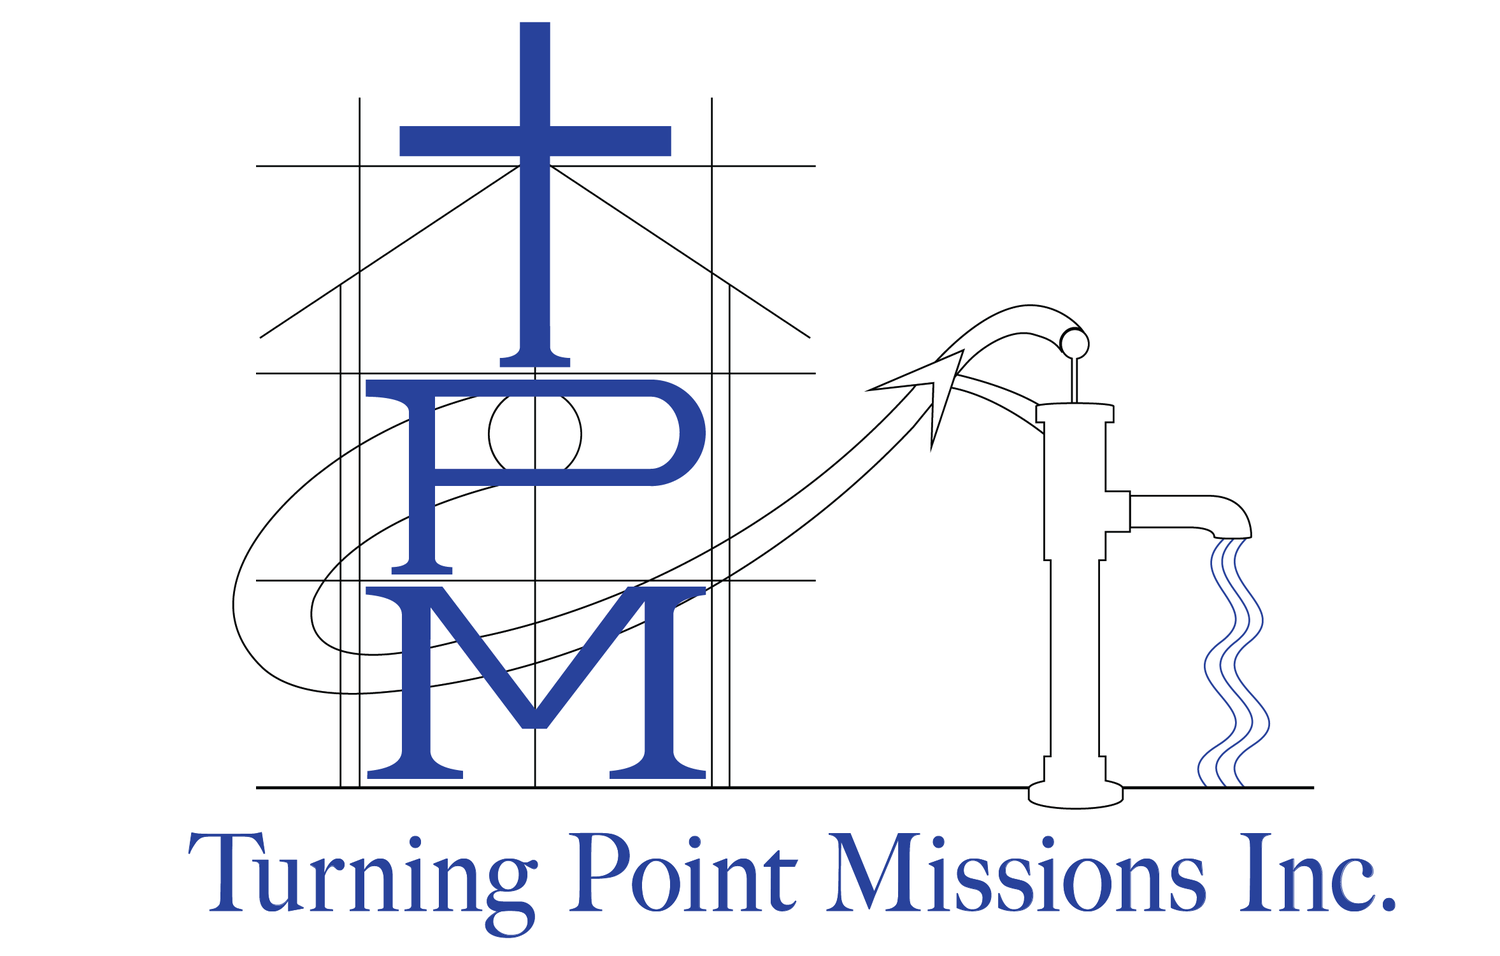 Turning Point Missions, Inc